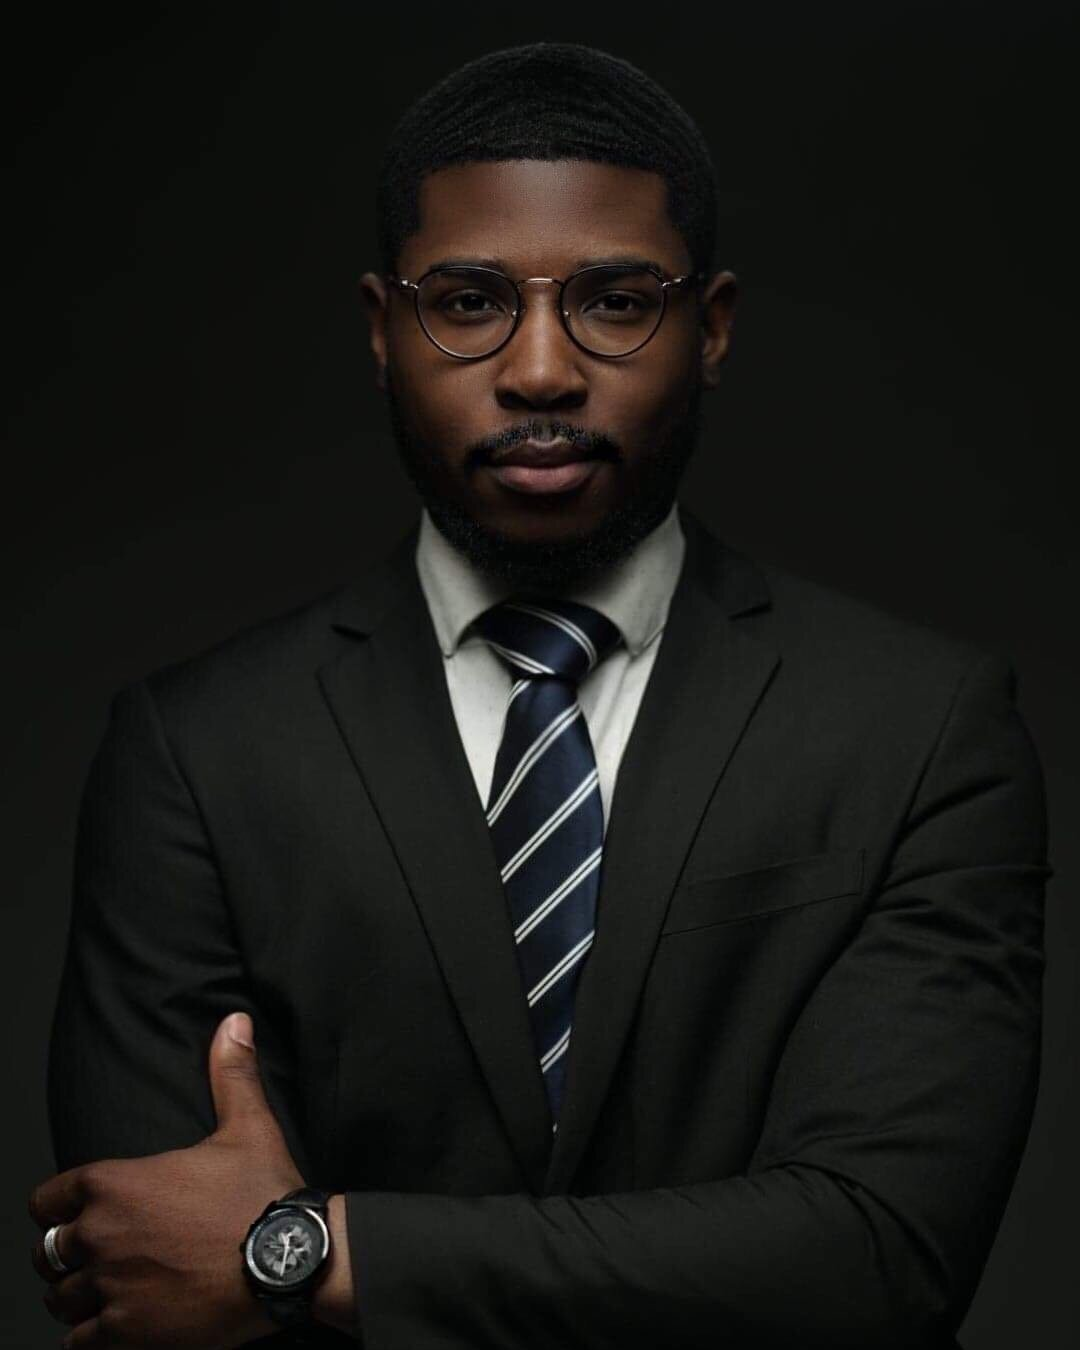 Tyrese CoakleyVP Corporate Relations - Tyrese Coakley is a second-year student from the Bahamas majoring in finance. Although he was born in the Bahamas, Tyrese grew up in Bermuda where international business drives the economy and is a part of everyday lives, hence his passion for pursuing a future in business. As this year's VP Corporate Relations, Tyrese plans to increase the number of sponsorship dollars for the BAUS, as well as provide the most value and growth opportunities possible for students - placing them at the core of every decision he makes. He also hopes to get to know more about and network with the students. In his downtime, he likes to listen to and make music, plus he also plays the saxophone. In addition to music, He loves reading, going to the gym and cooking. One day he plans to own his own business that prepares high school students who'd like to go to university by teaching them essential life skills and providing one-on-one tutoring and mentorship, as well as funding - making tertiary education attainable for all. He is currently building his business.